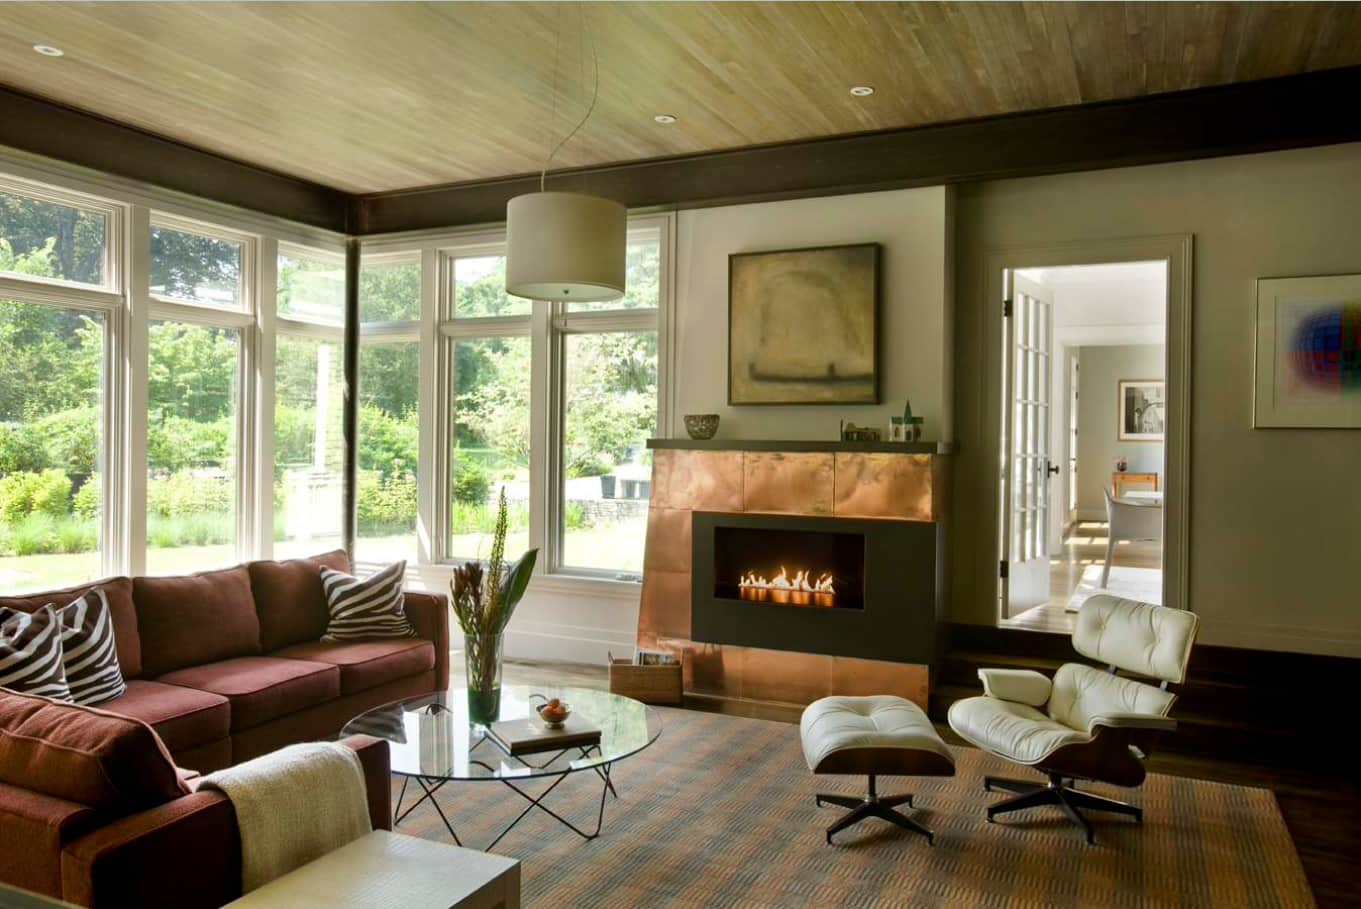 Copper Decoration Elements as Fashionable Interior Design Trend. Shining metall panel to emphasize the fireplace in Casual styled cottage